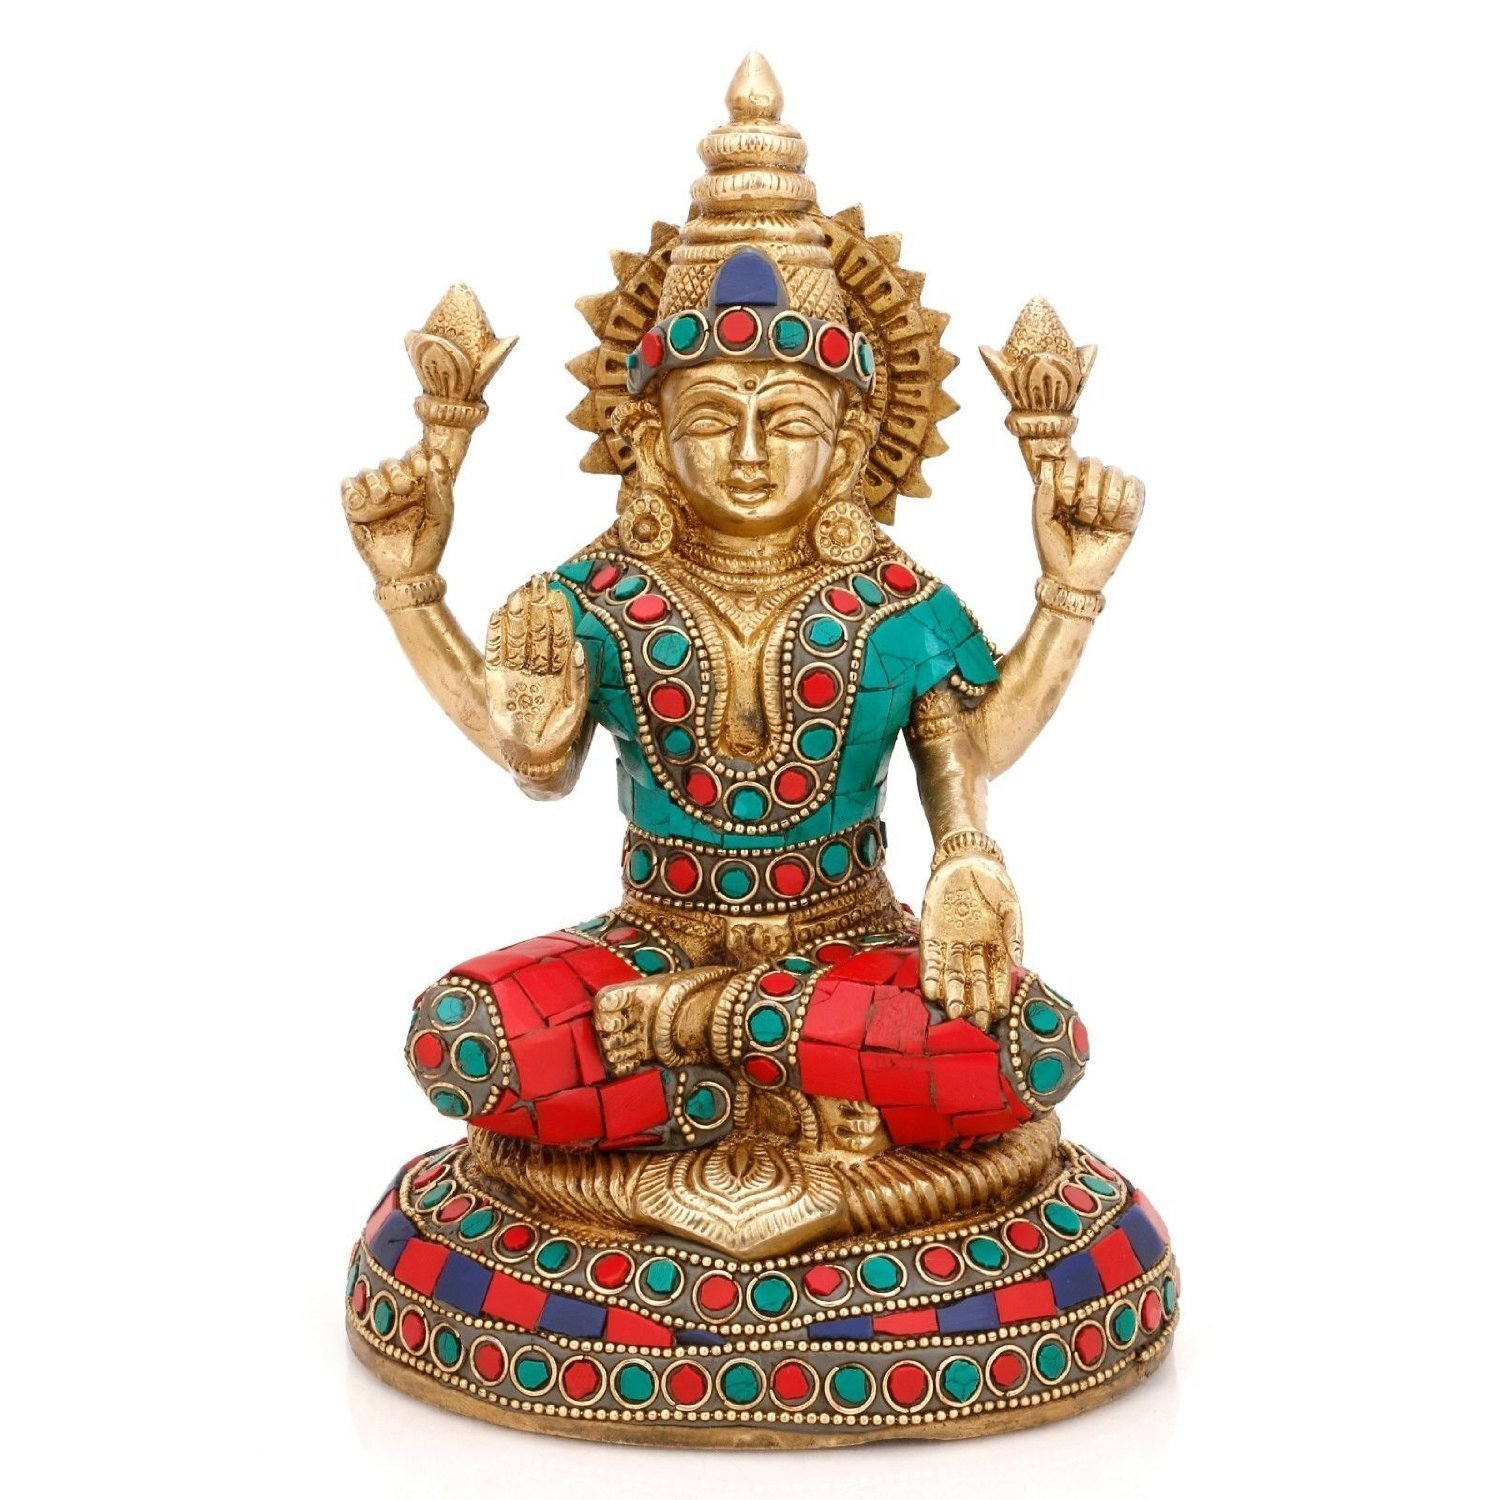 Aone India Lakshmi Laxmi Hindu Goddess Brass Statue- Good Fortune, Wealth and Prosperity - Symbol of Beauty, Love and Grace + Cash Envelope (Pack of 10)